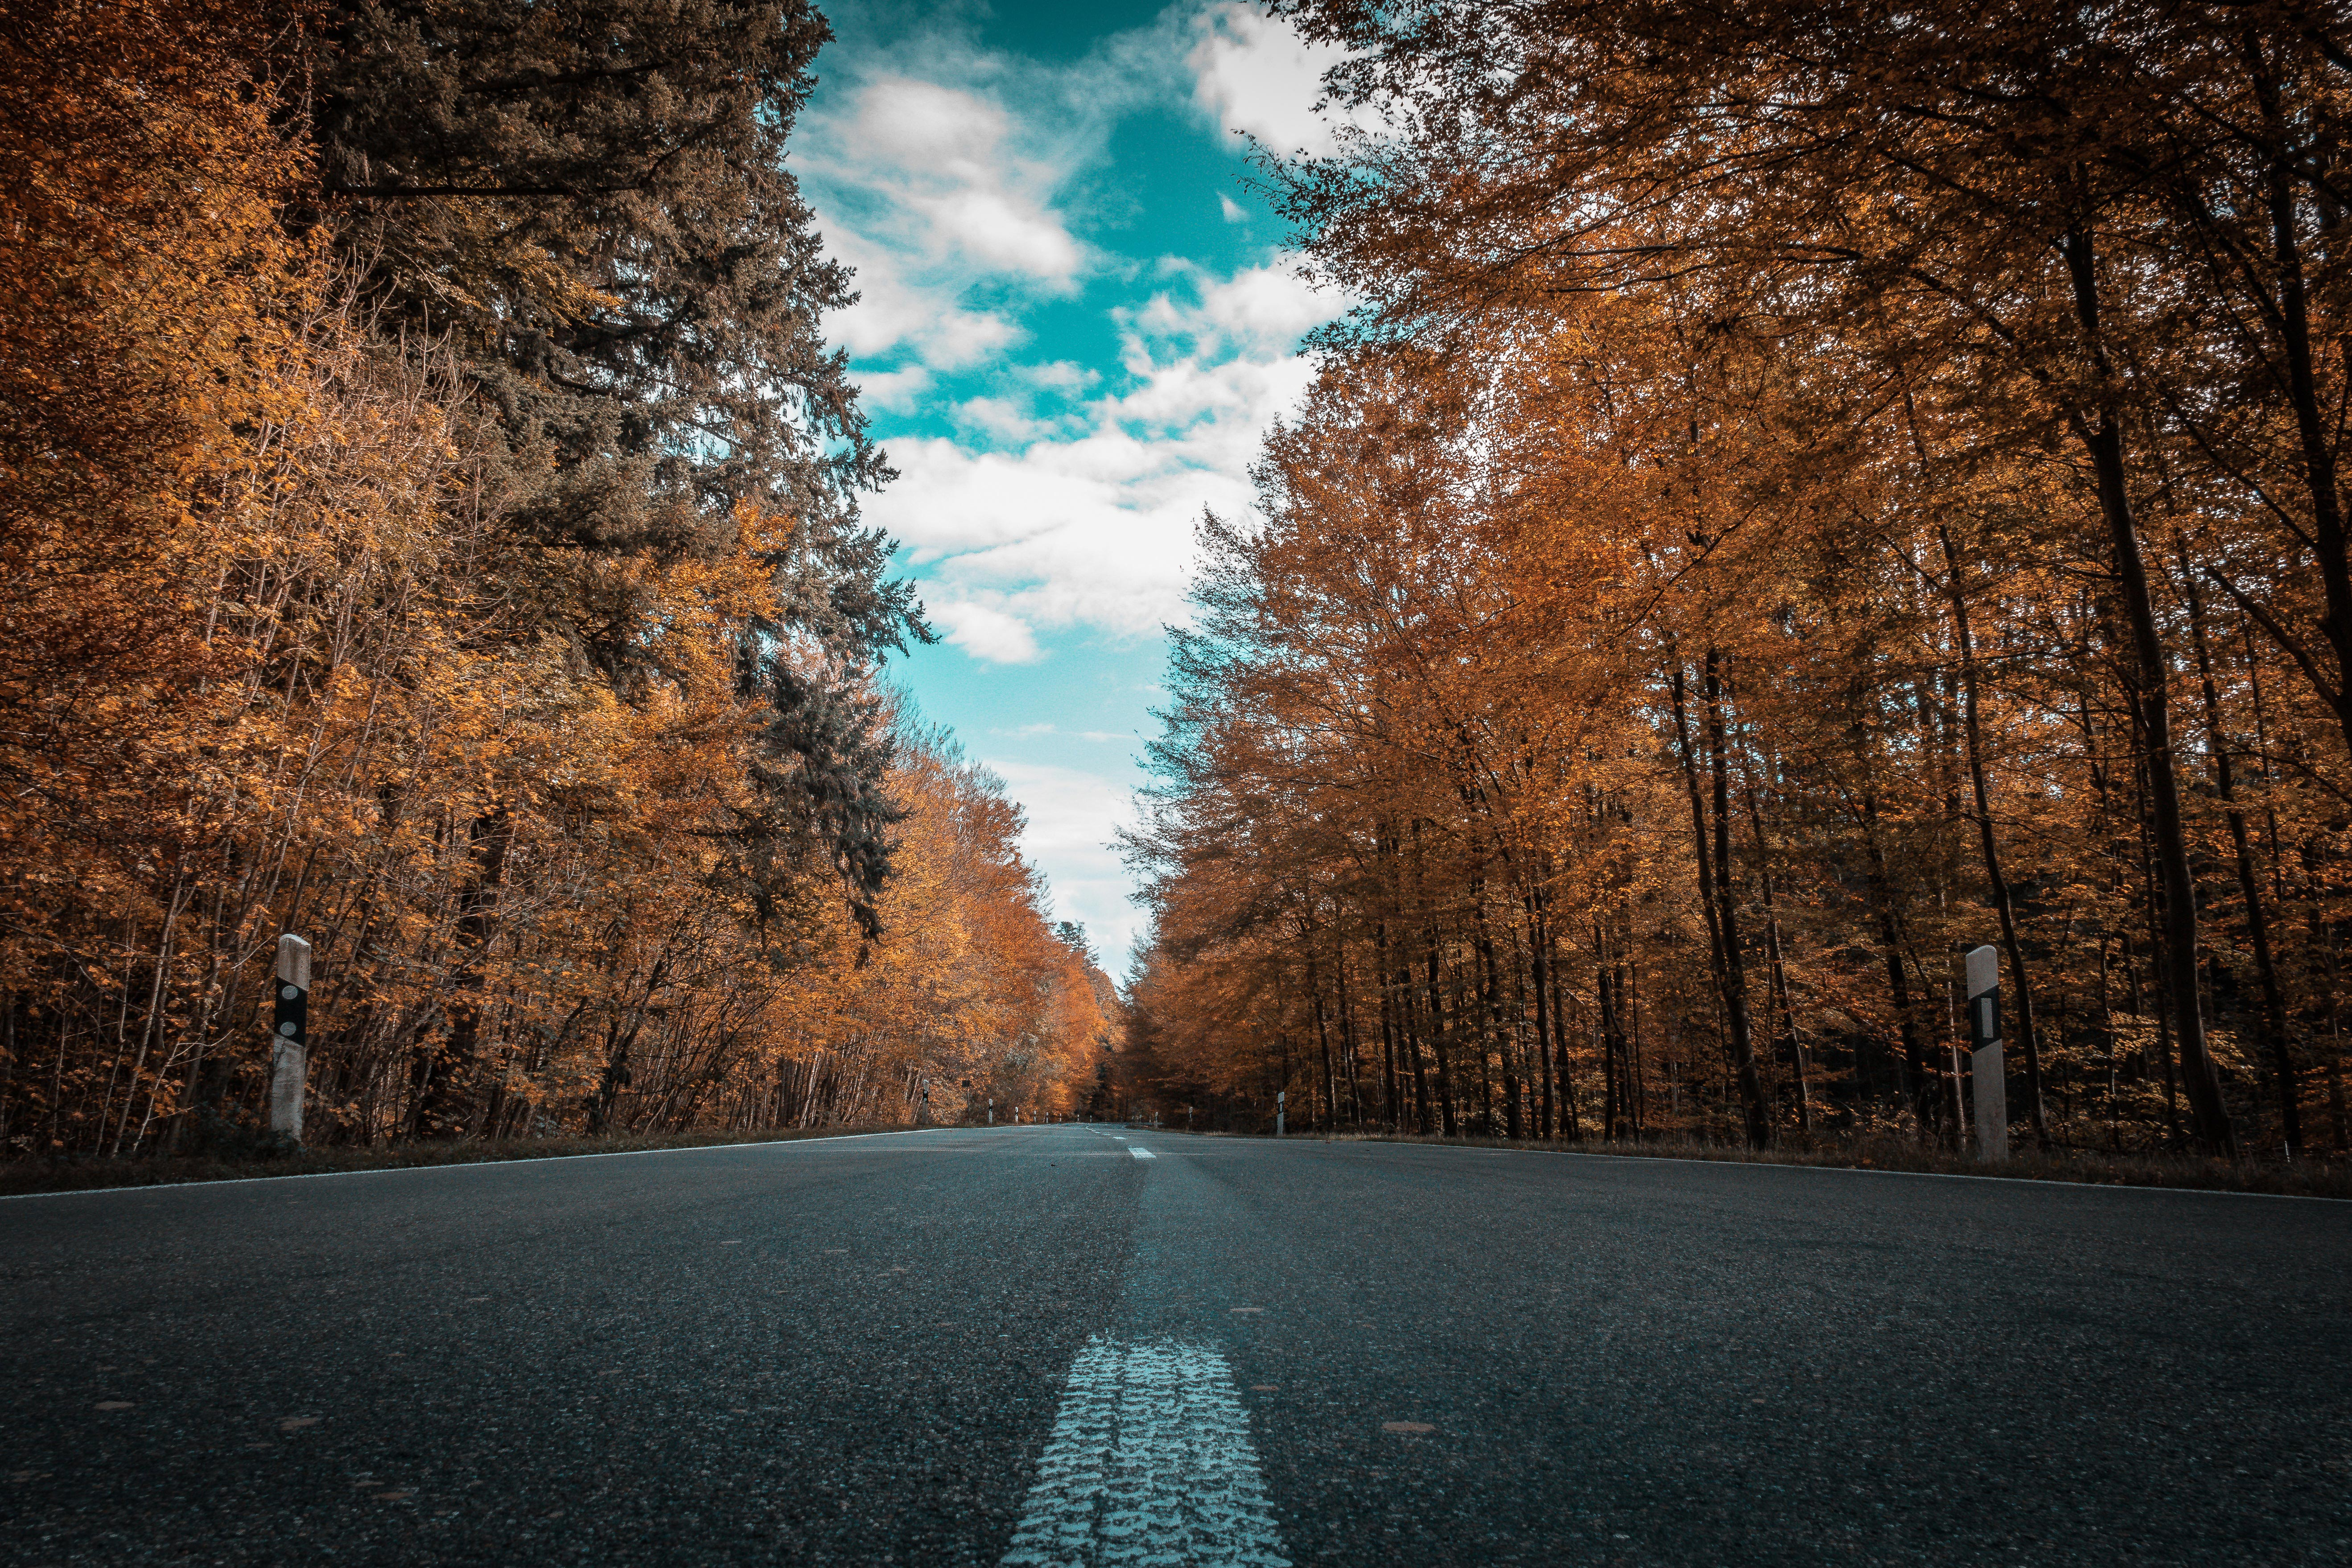 Alone Road Forest Autumn Golden Trees Ultra 4k Hd Nature 4k Wallpapers Images Backgrounds Photos And Pictures